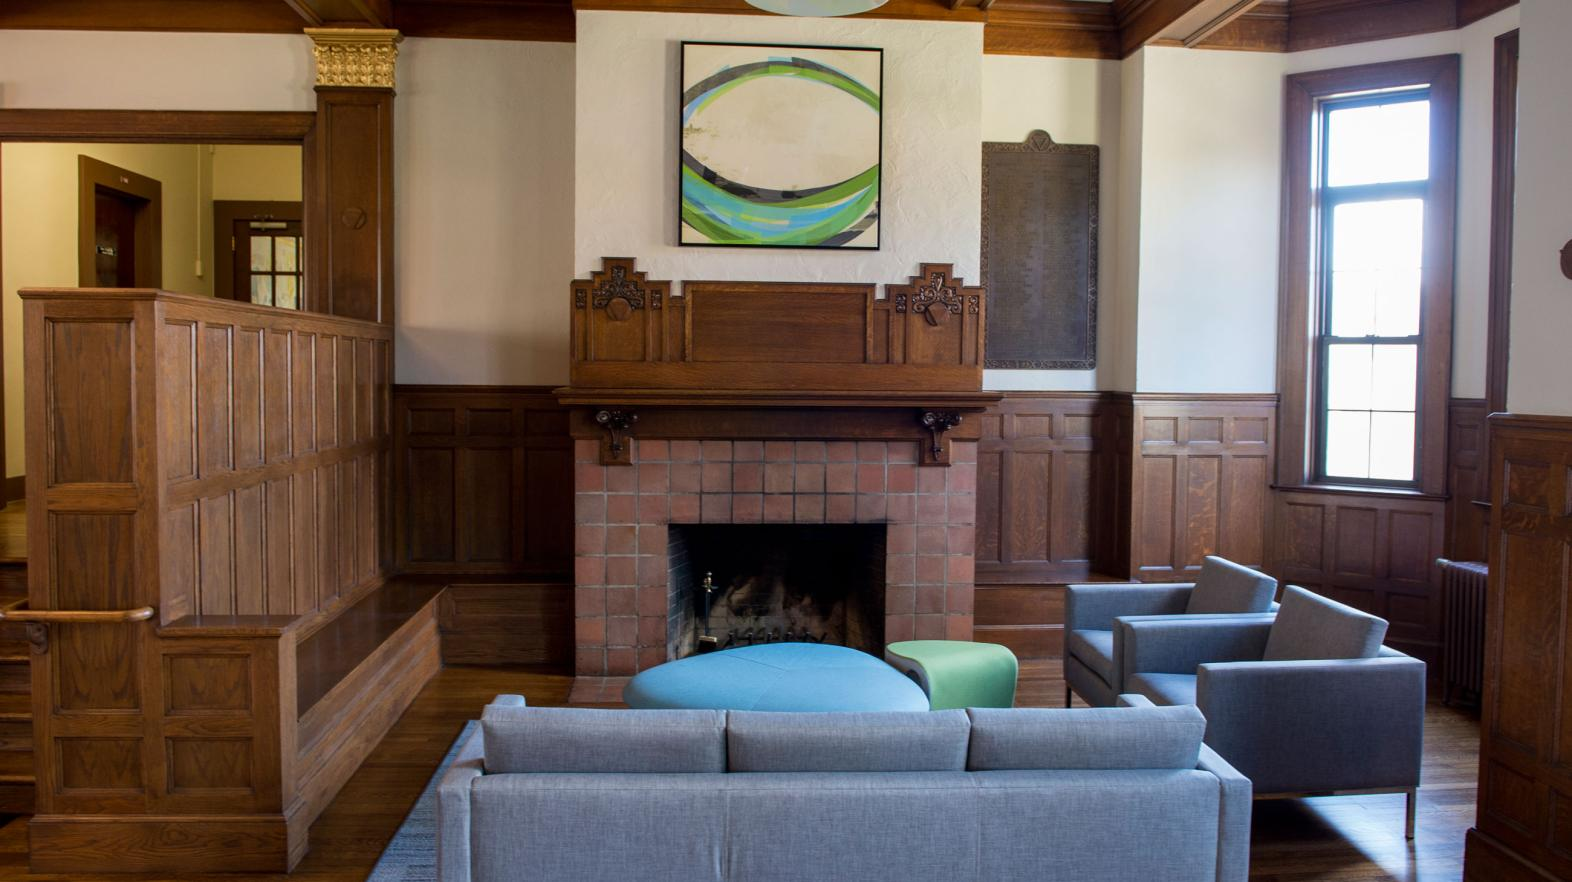 Carlisle Foyer, located in Alumni Hall, features a fireplace and lounge area for students.